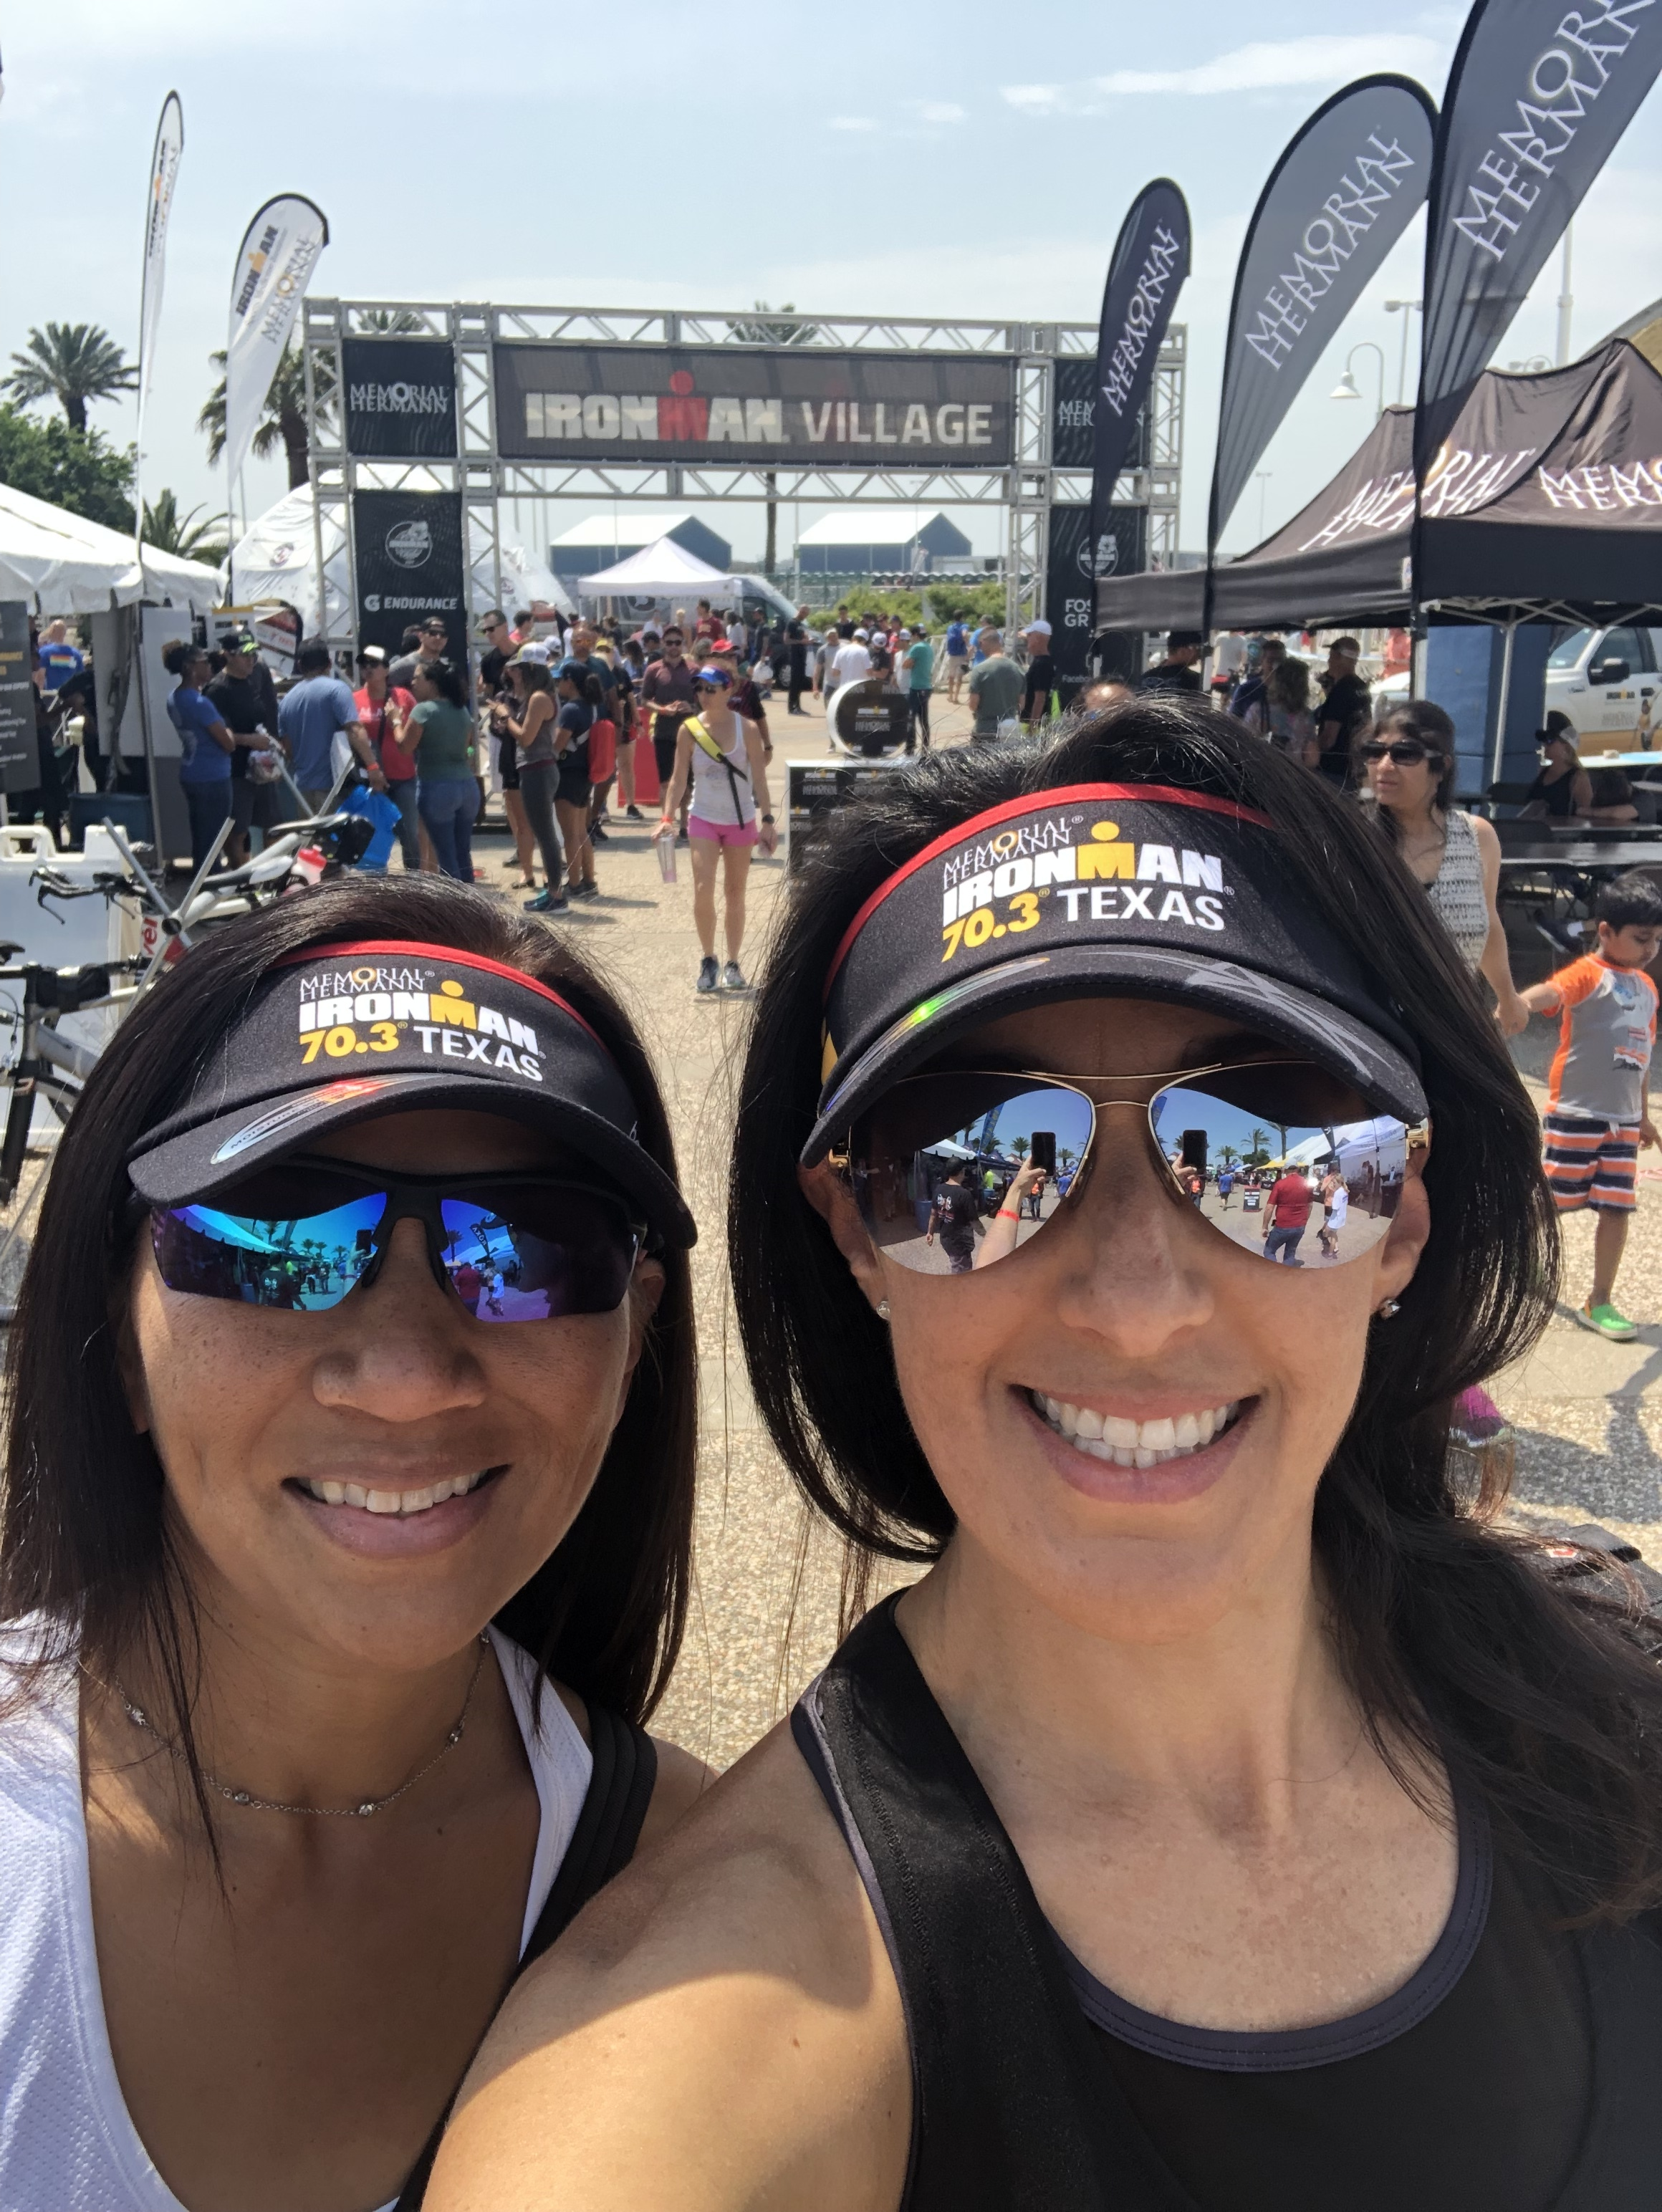 With our new IM70.3 Texas visors!